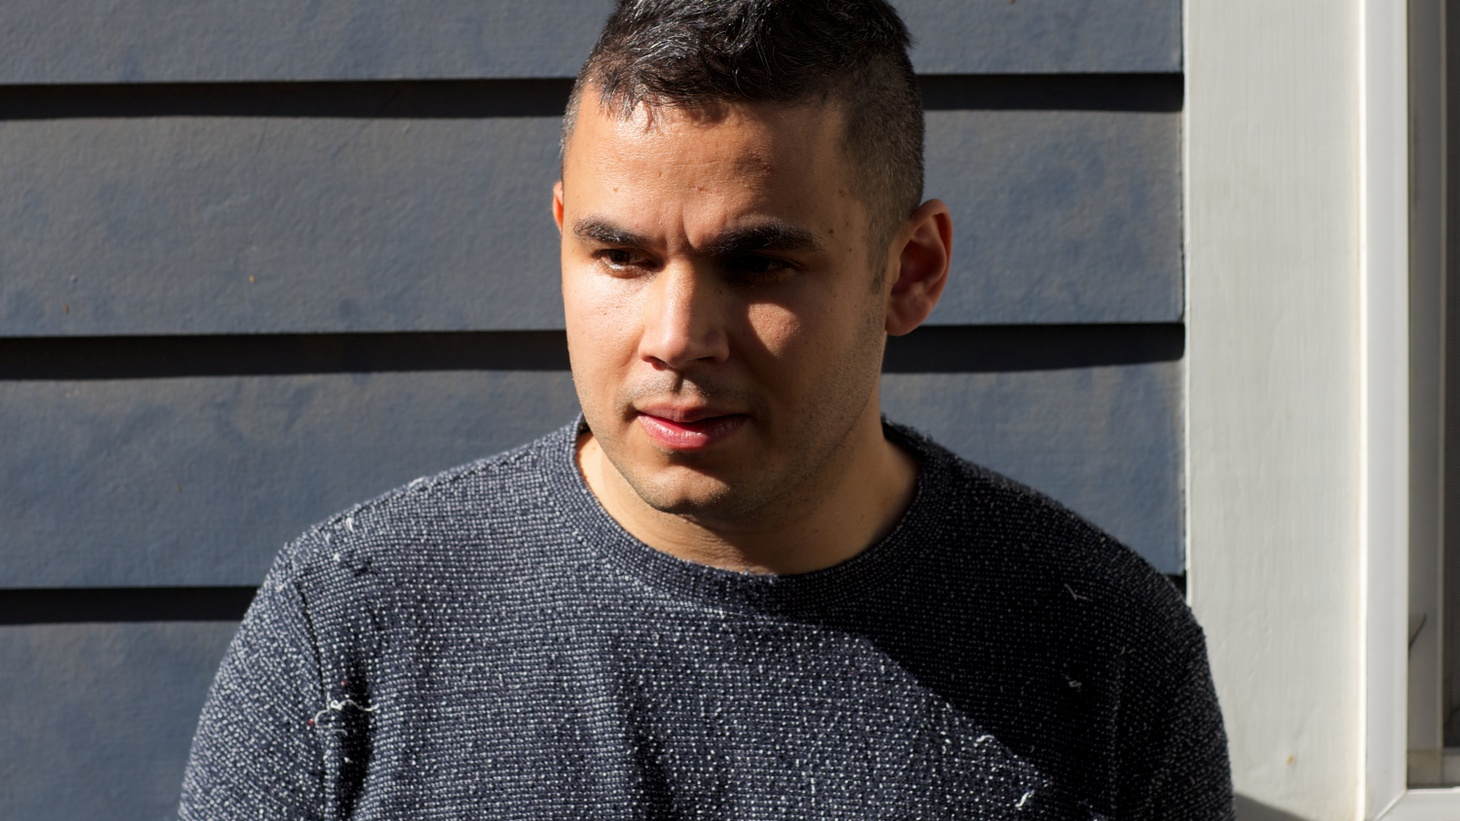 ROSTAM visits Morning Becomes Eclectic at 10am for a Guest DJ set and conversation.